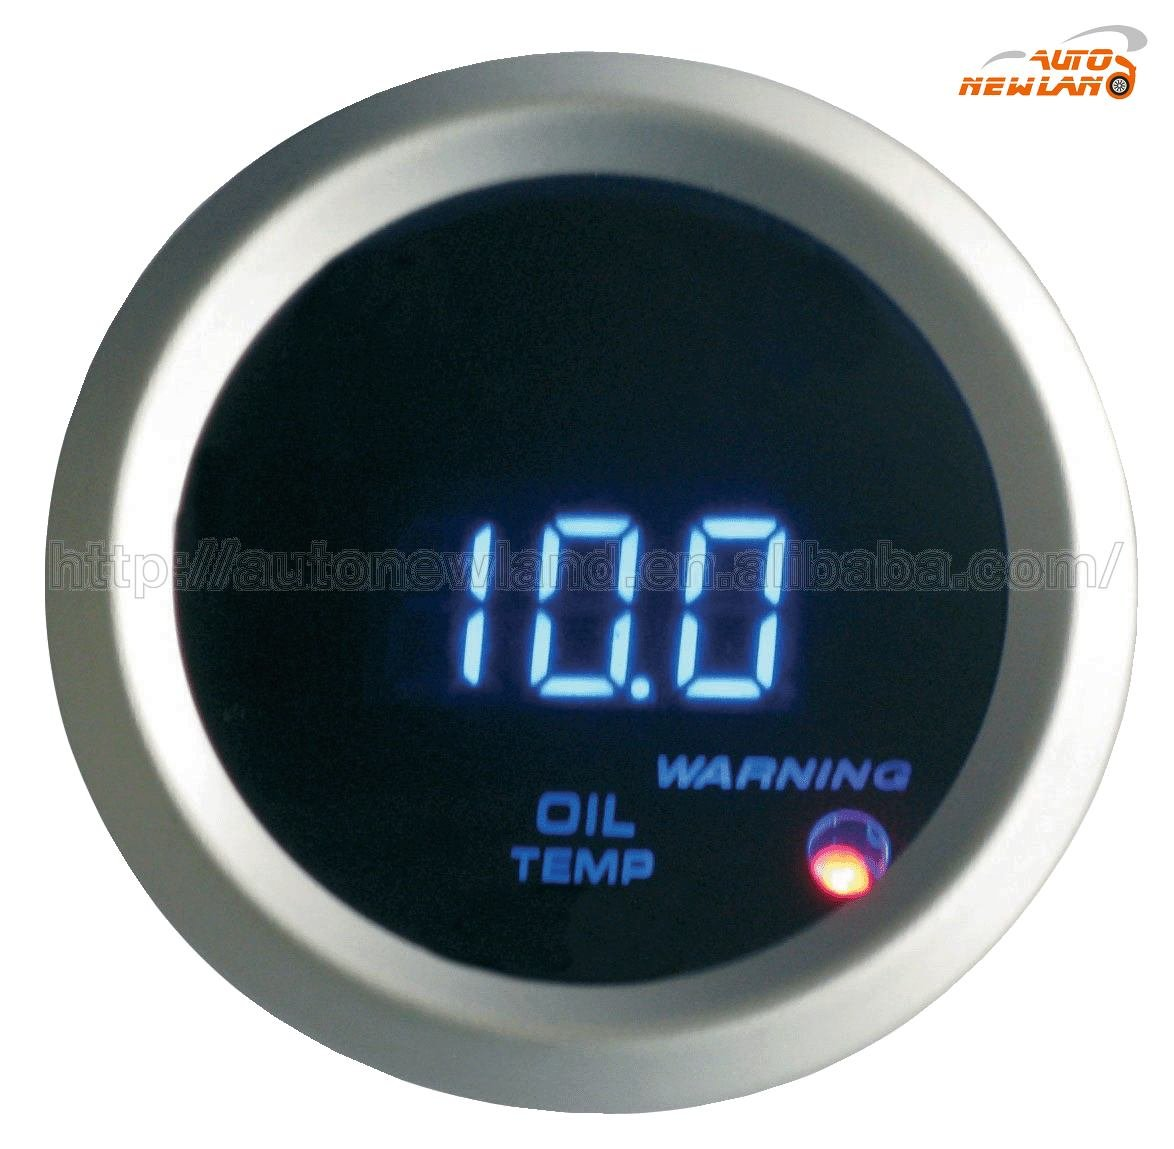 car / auto digital oil temp gauge / meter 2''